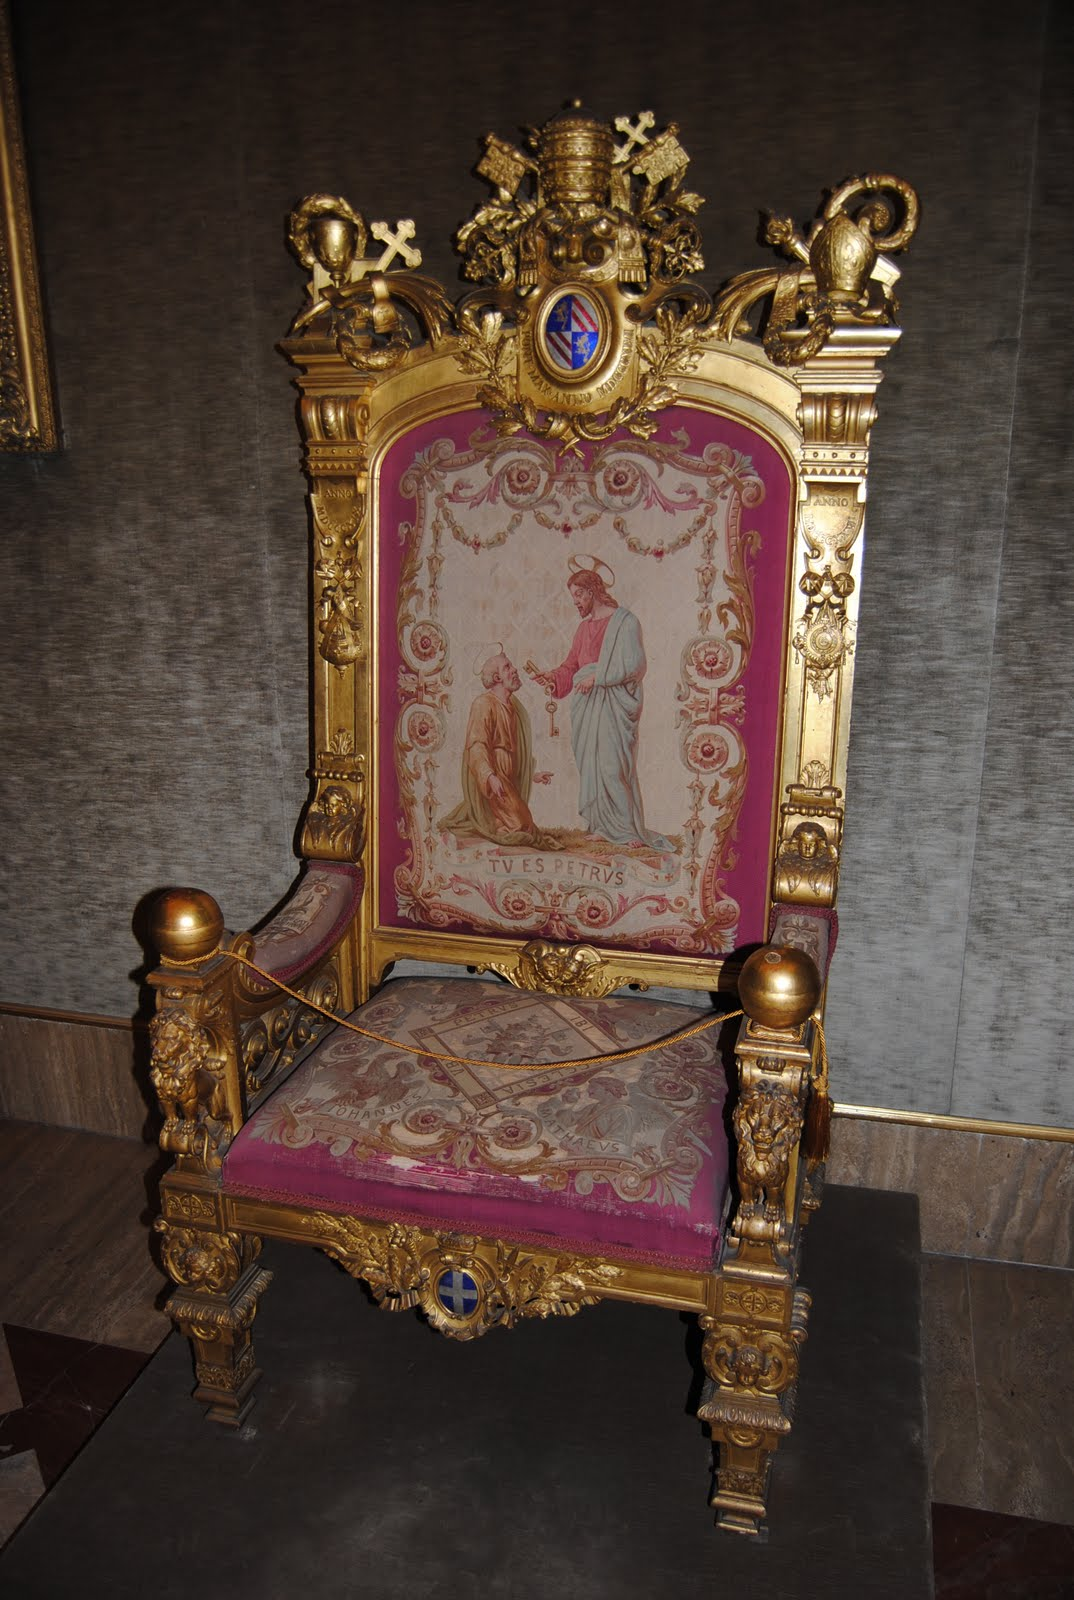 throne pictures orbis catholicus secundus papal throne 149